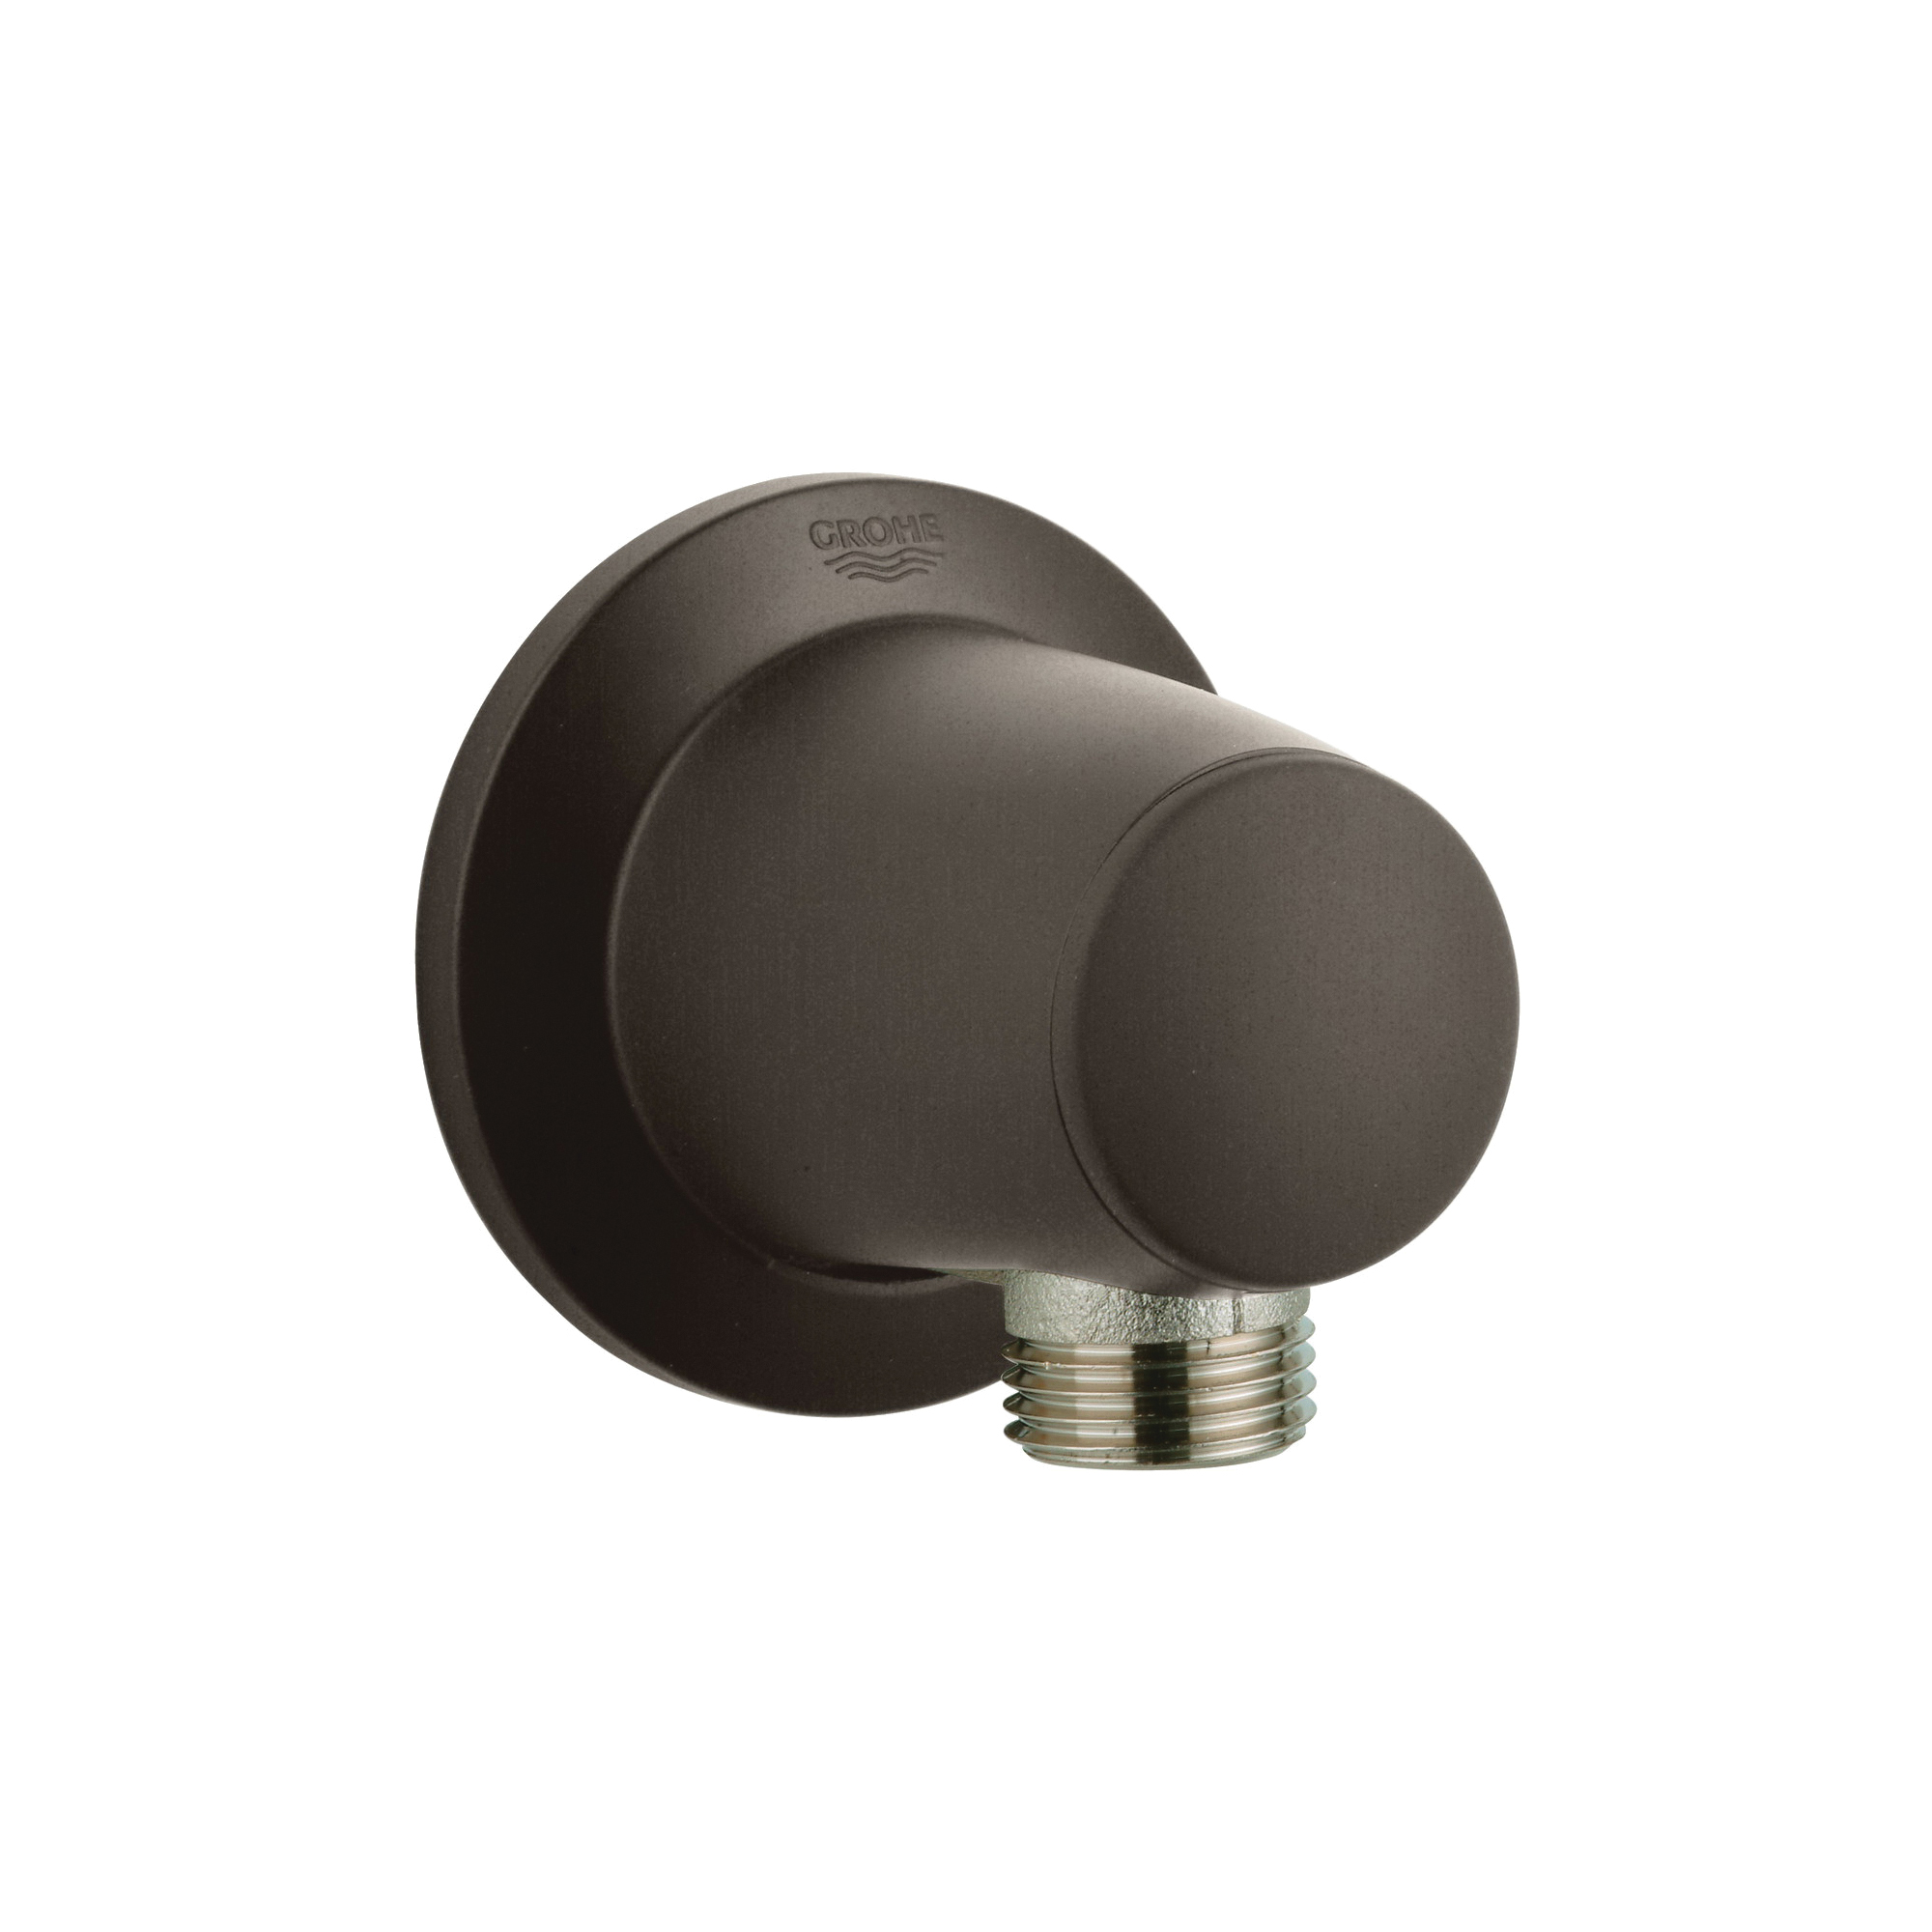 GROHE 28459ZB0 Movario Shower Outlet Elbow, 1/2 in, FNPT, Brass, Import